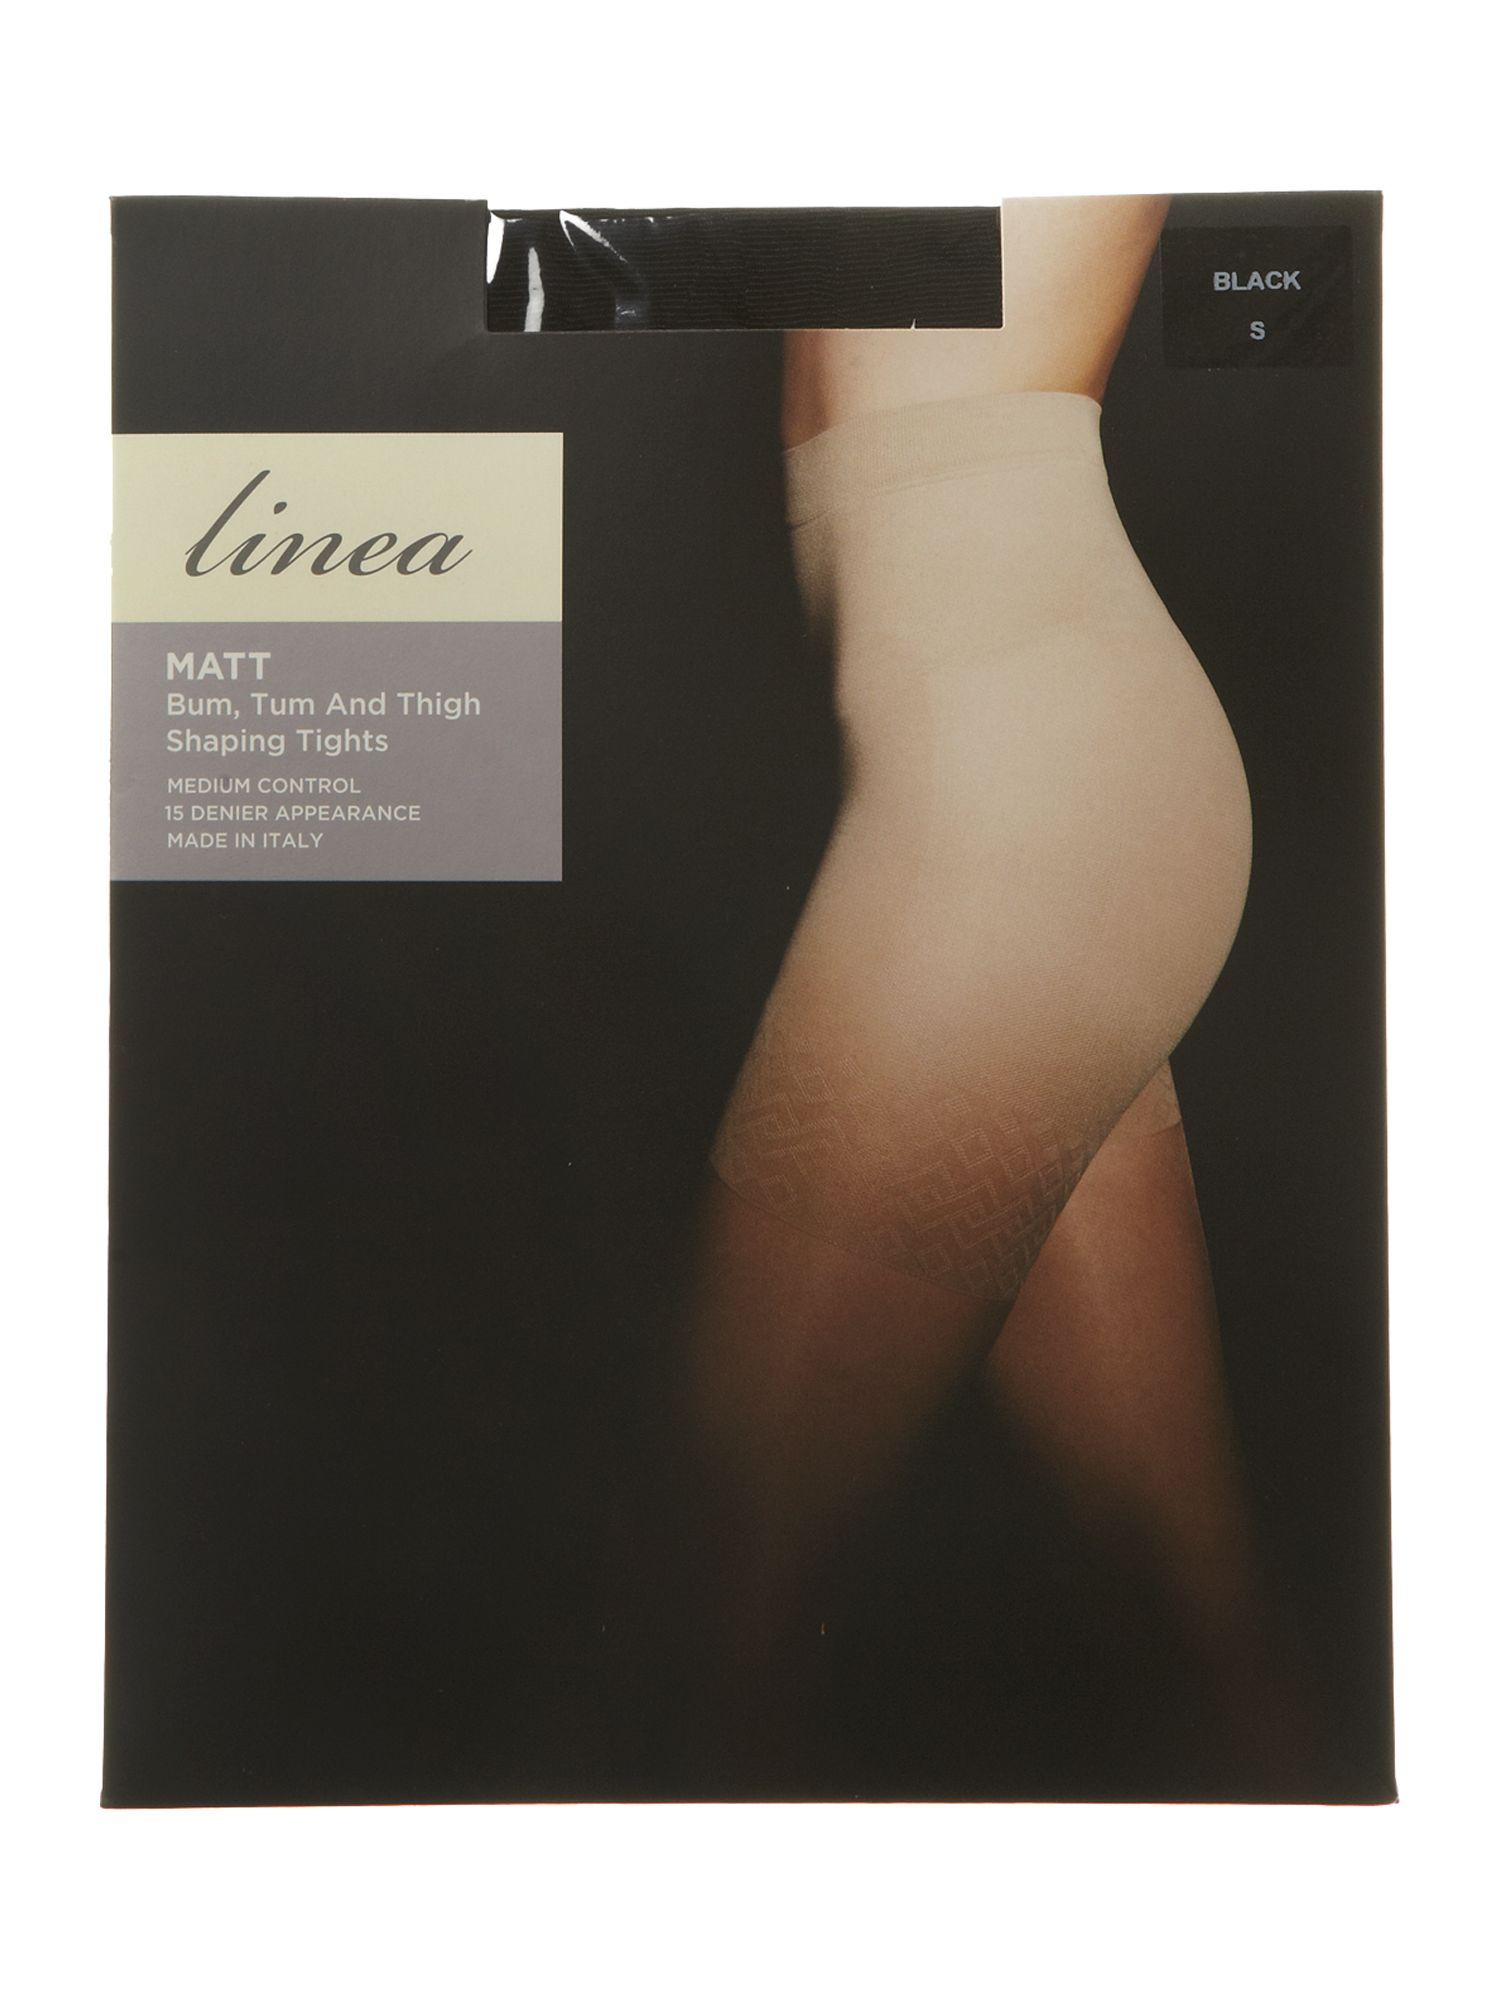 15 Den leg, bum & tum shaping tights